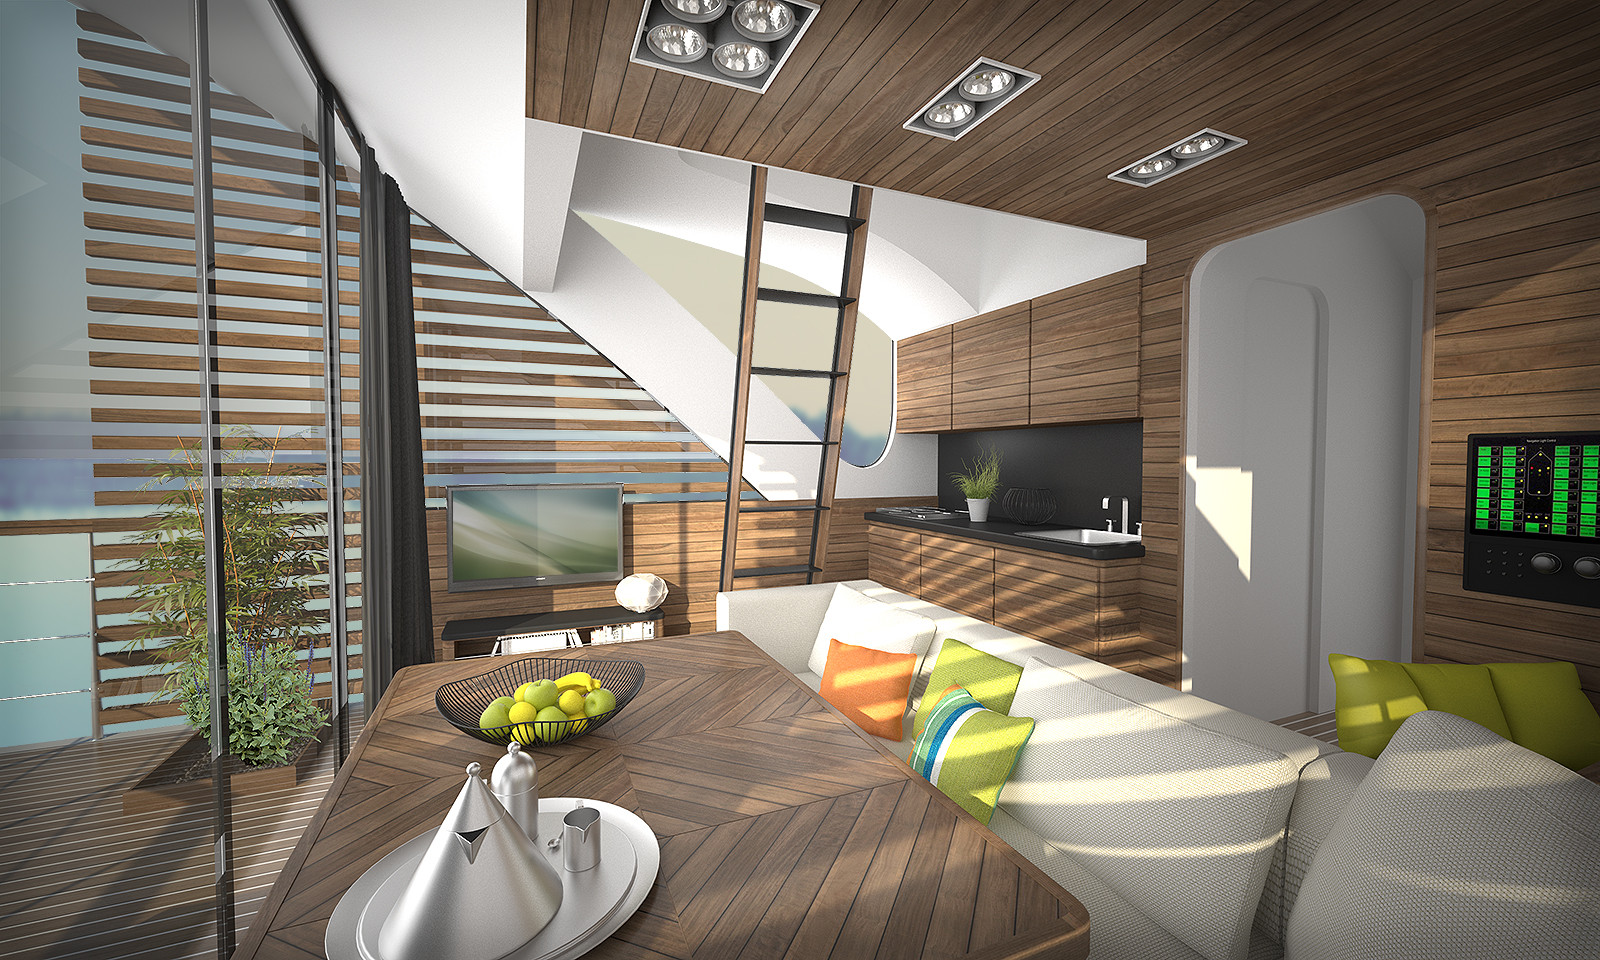 salt water design floating hotel with catamaran apartmentscatamaran interior view image